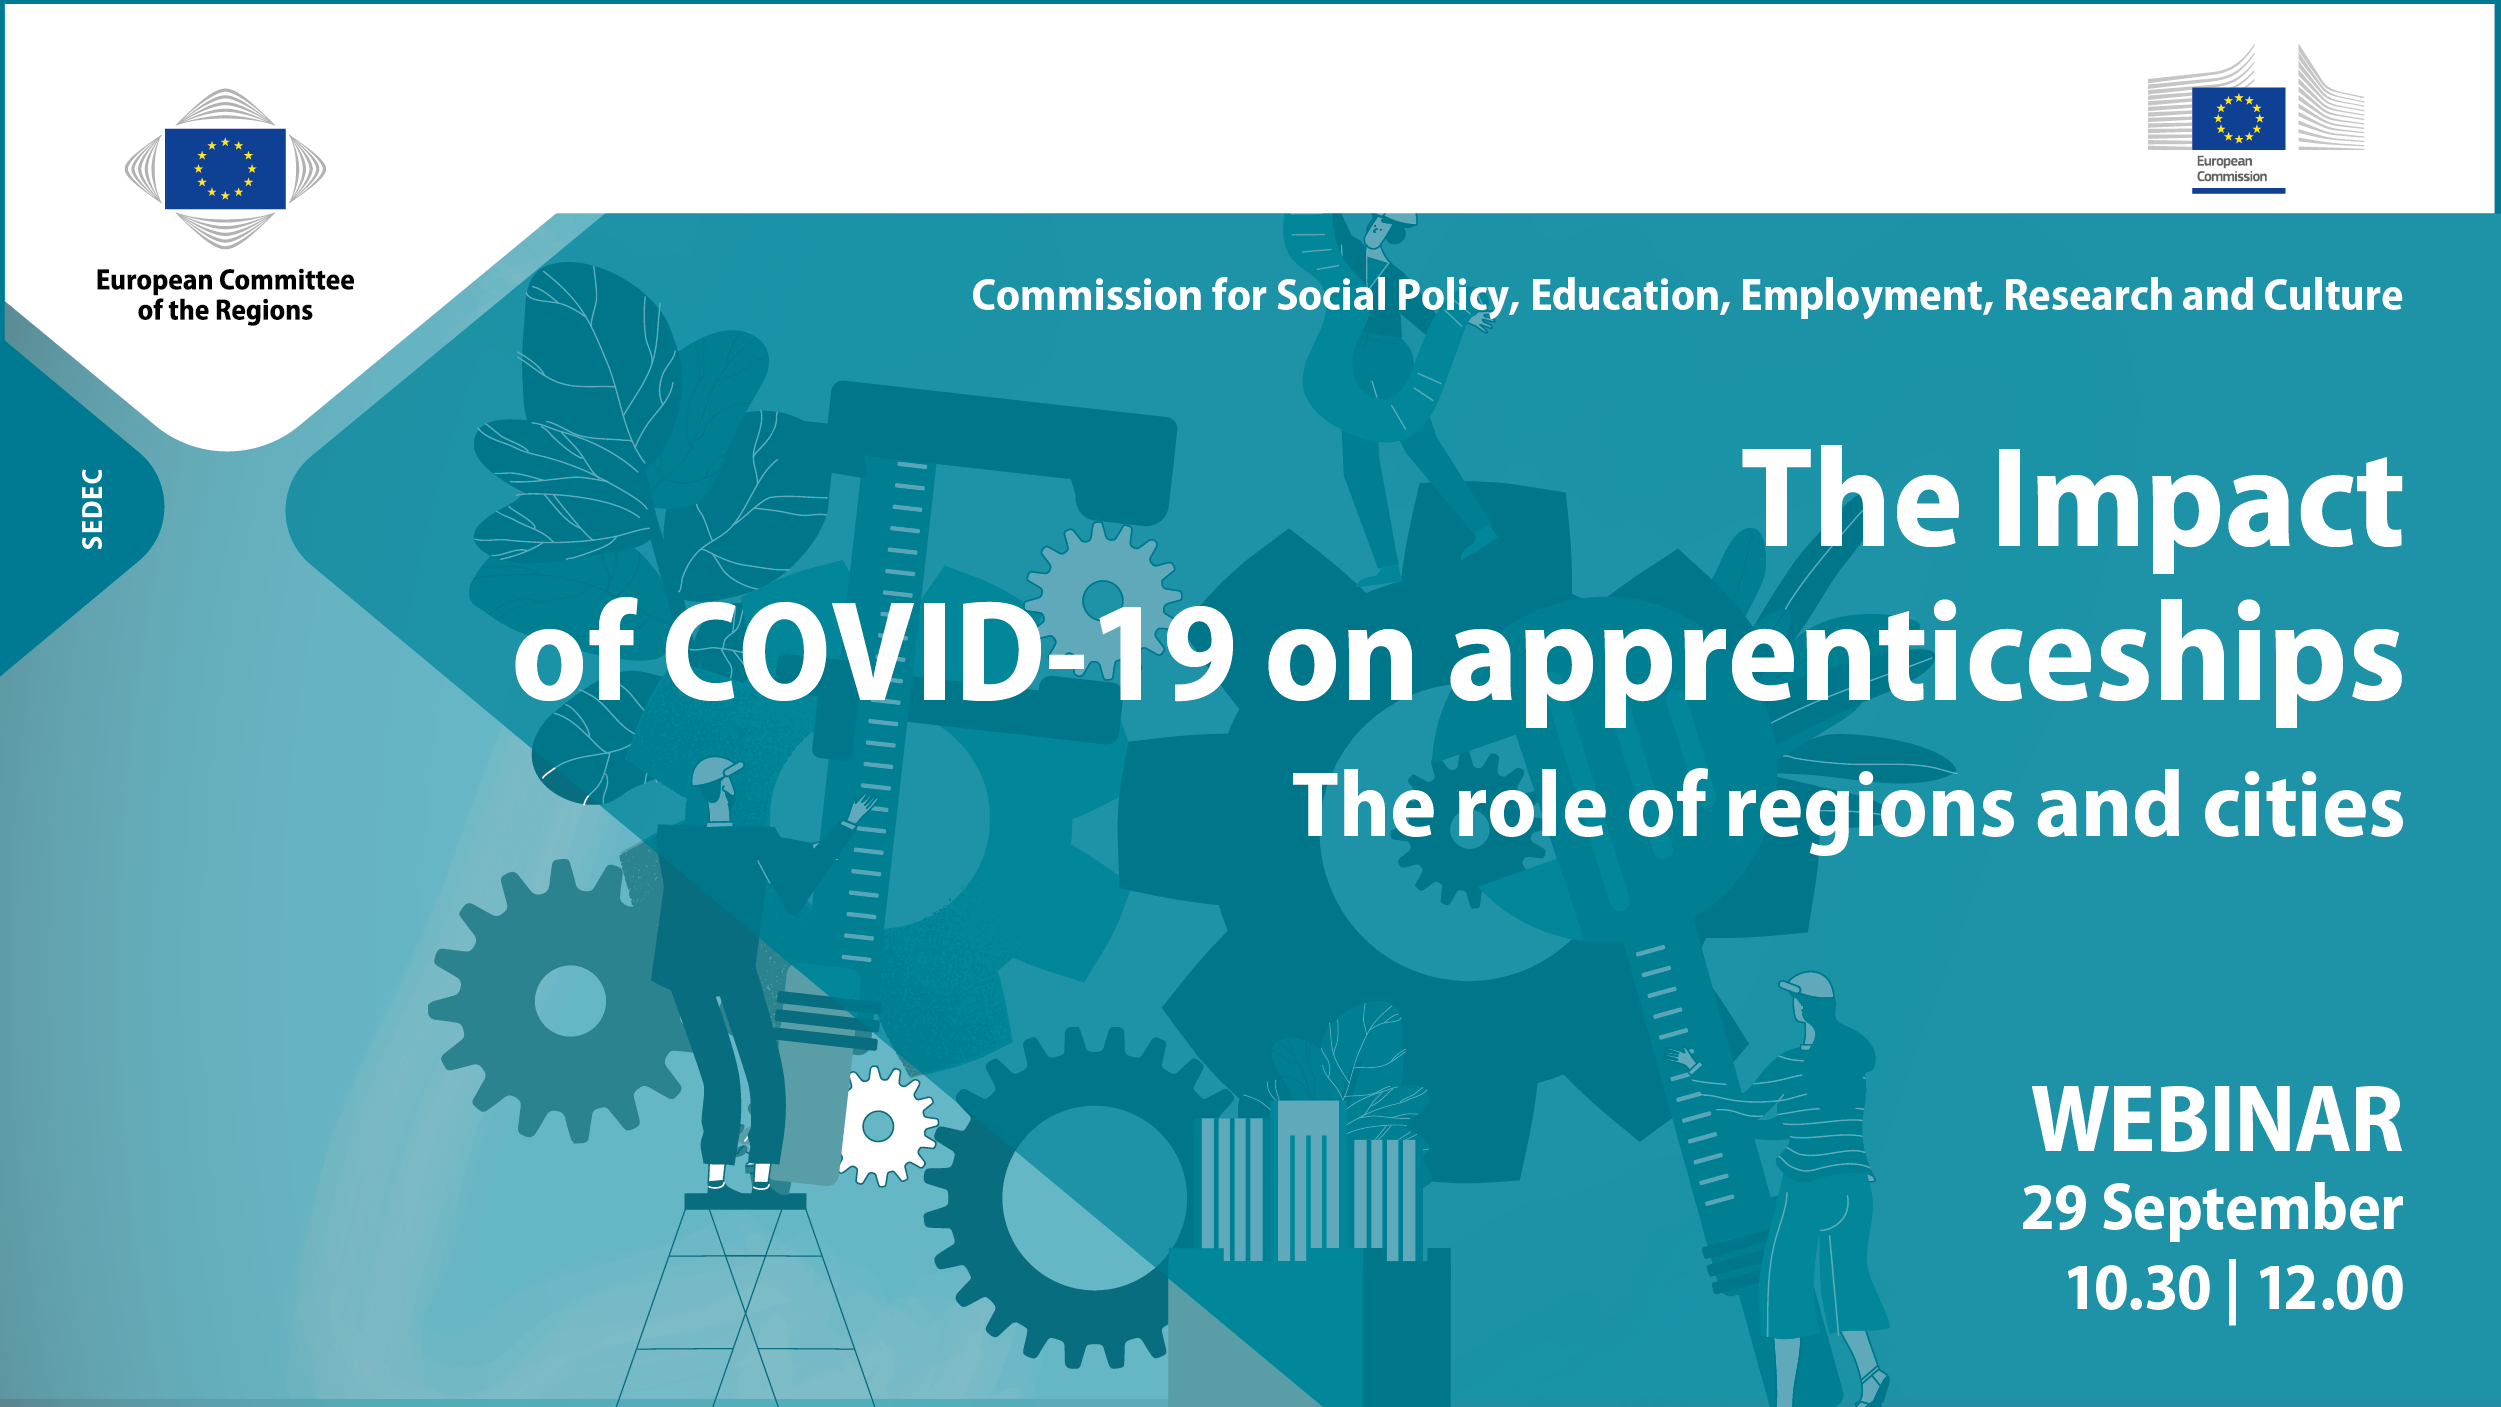 The impact of COVID-19 on apprenticeships. The role of regions and cities.